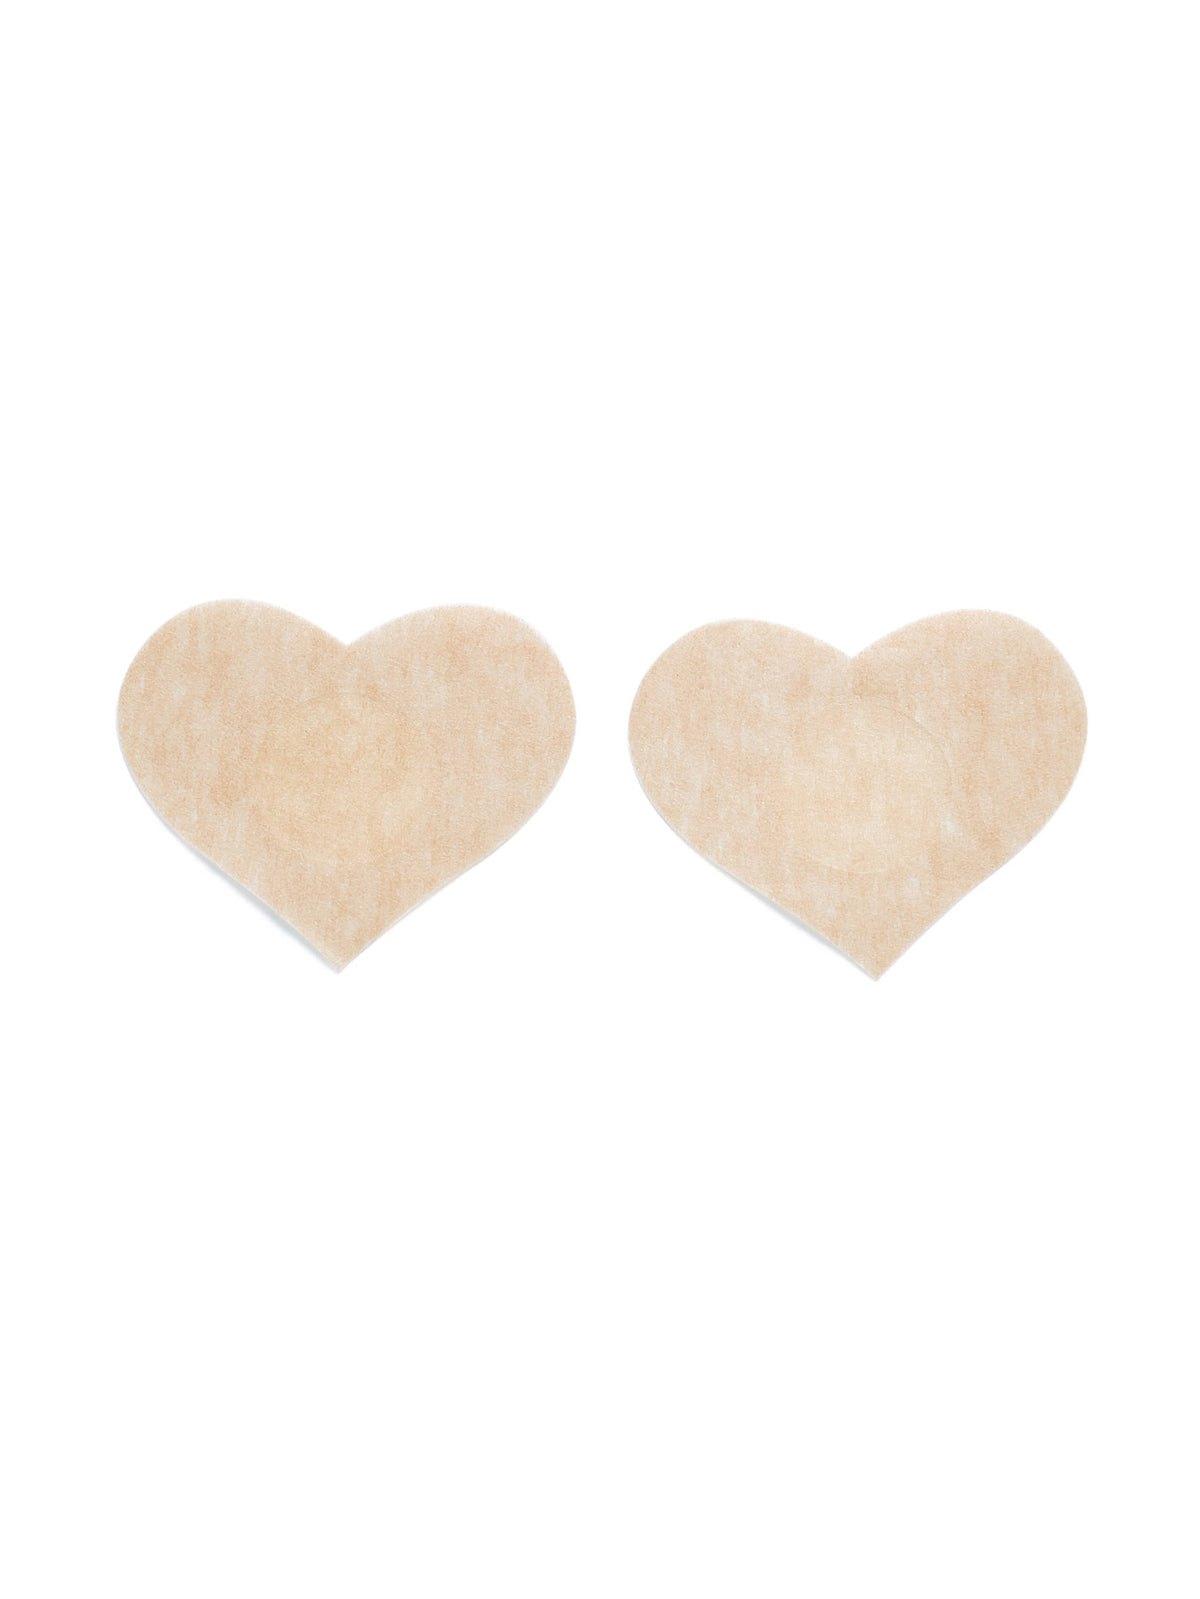 Disposable Heart Shaped Nipples Covers 5pairs